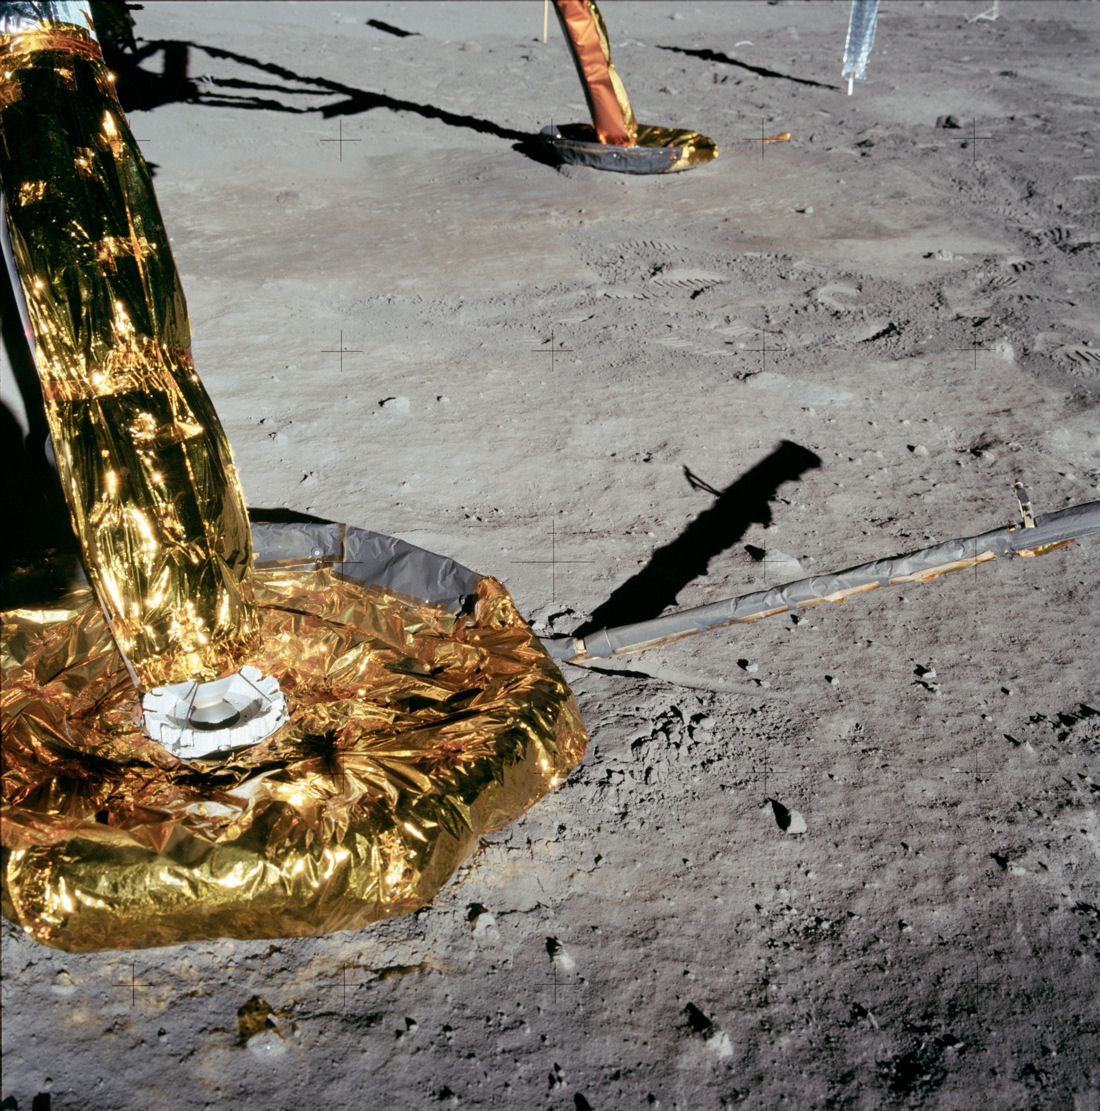 germany nazi on moon landing images - photo #39